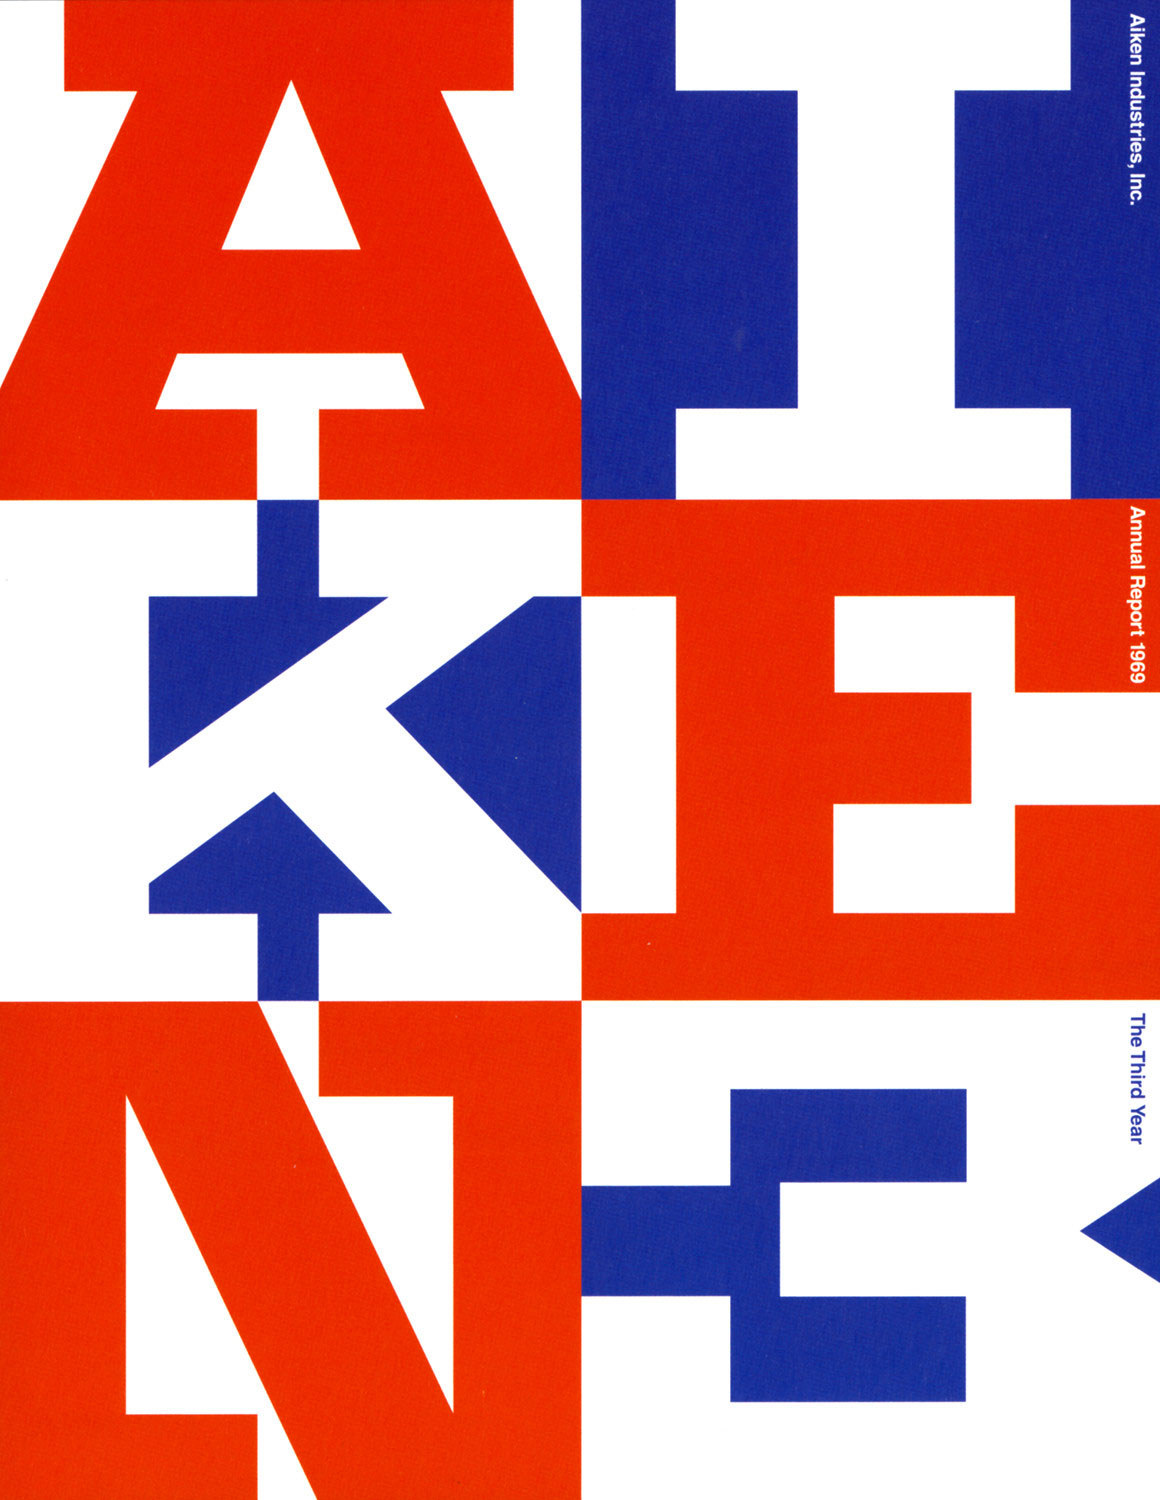 Chermayeff-and-Geismar-Aiken-Industries-Inc.-1969